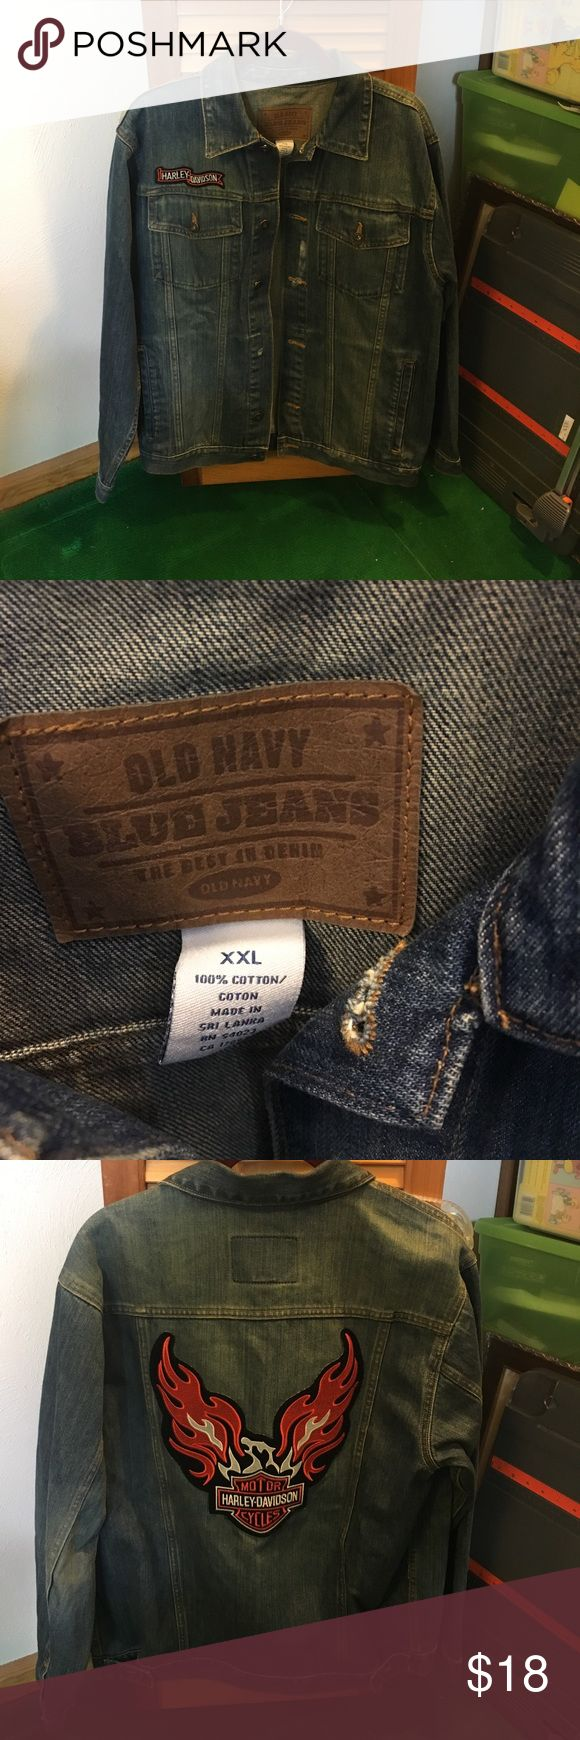 Old Navy Jean jacket XXL Harley-Davidson old navy jean jacket. Used, but still good condition. One button hole is a little worn (see pic). Old Navy Jackets & Coats Jean Jackets